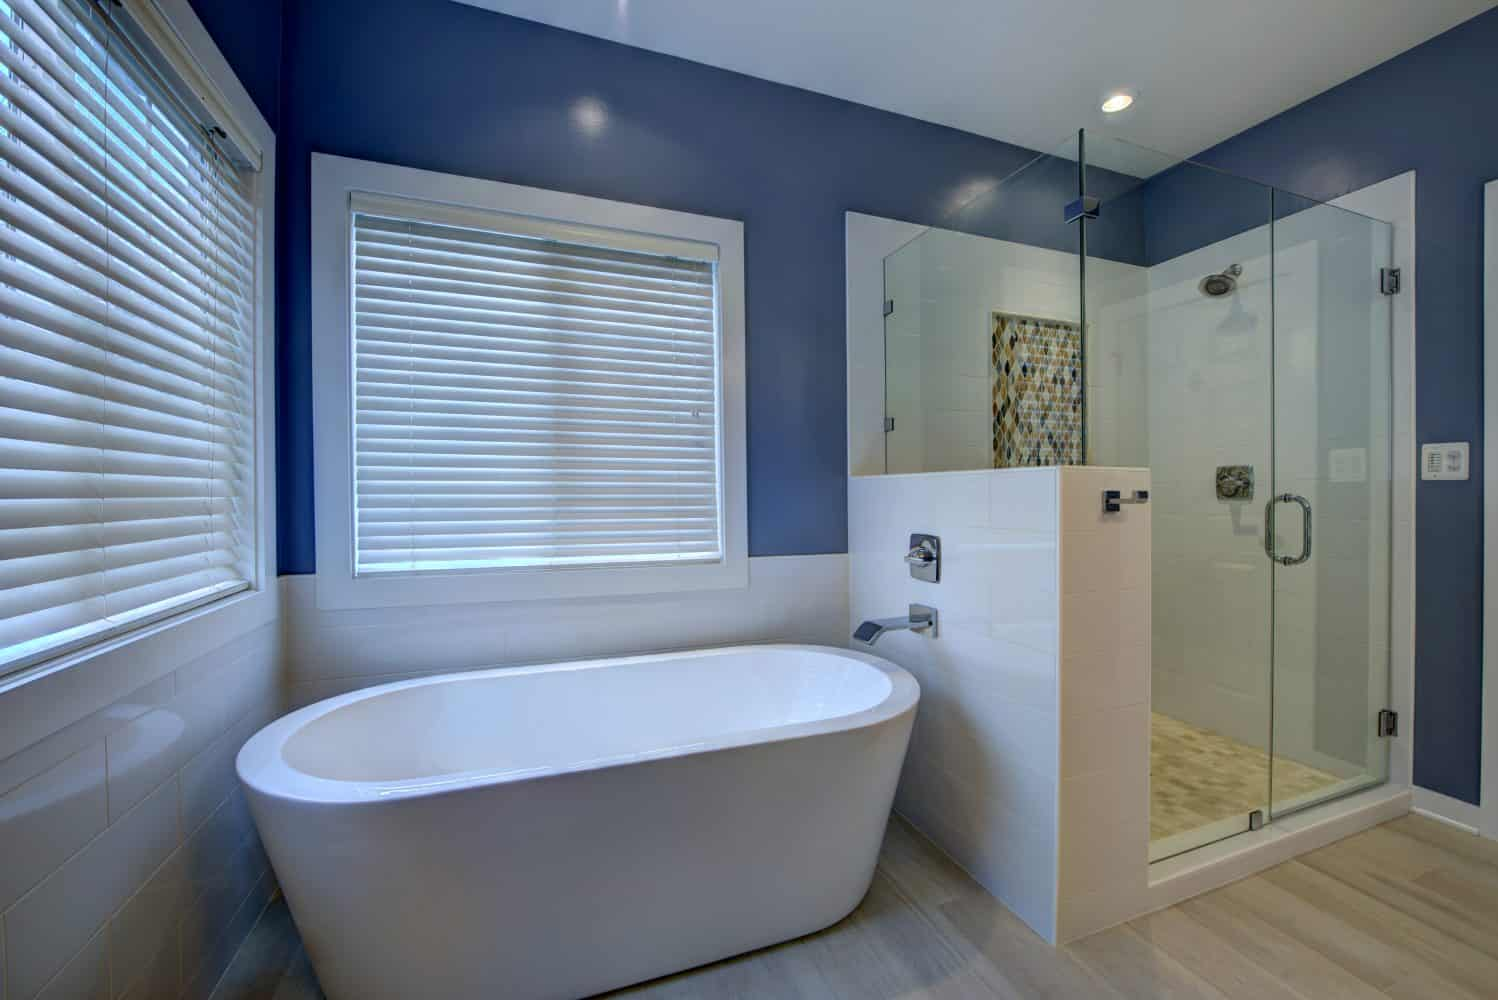 Services - Rendon Remodeling & Design LLC